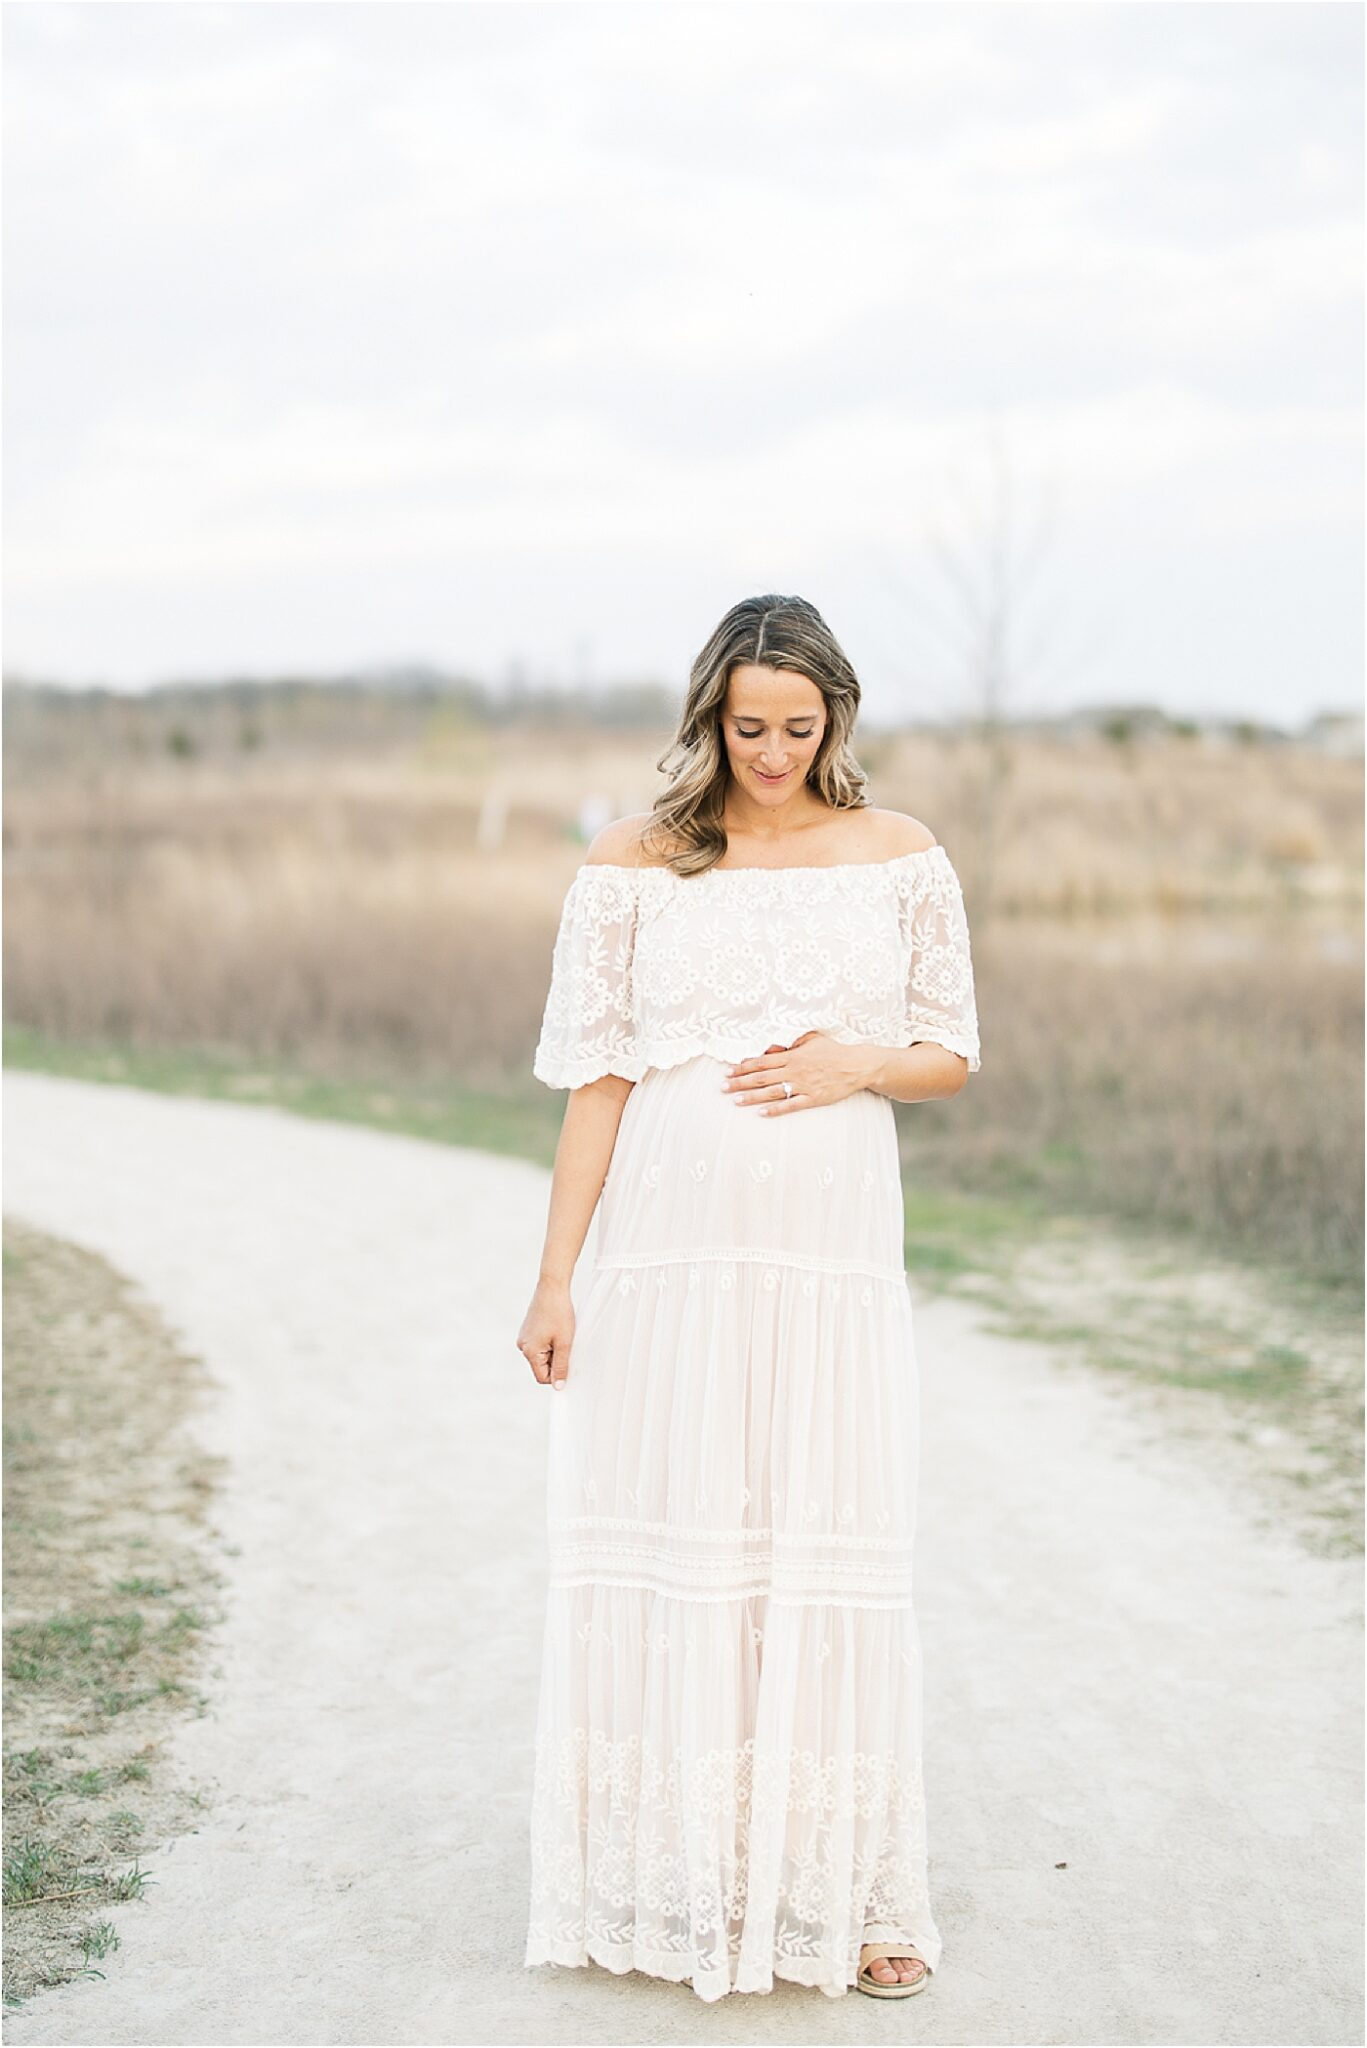 Pregnant mom walking in beautiful lace dress for photos with Lindsay Konopa Photography.